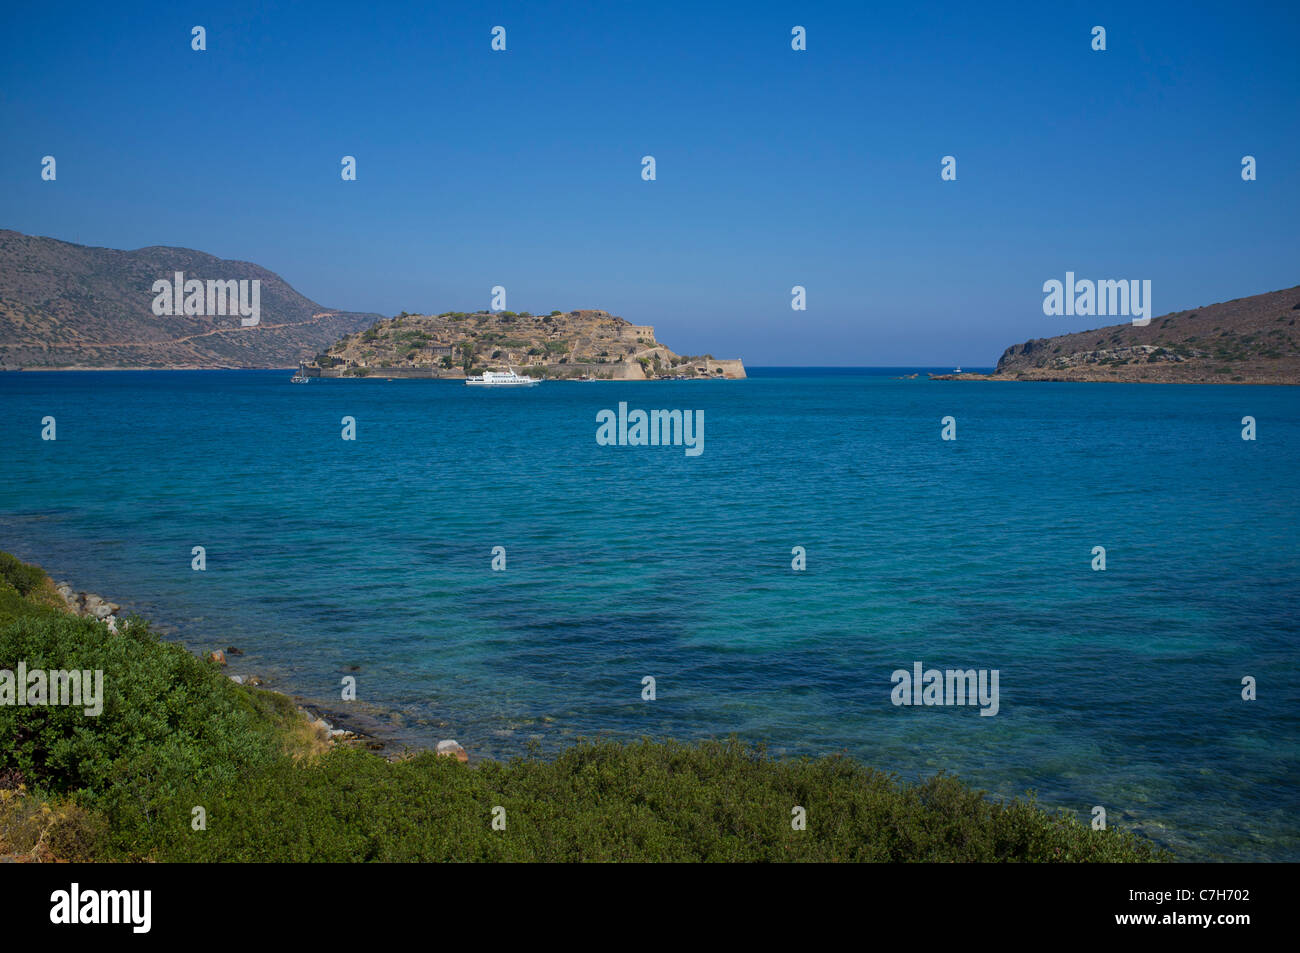 The former leper colony island of Spinalonga on Crete is now a holiday excursion destination for thousand of Holiday - Stock Image